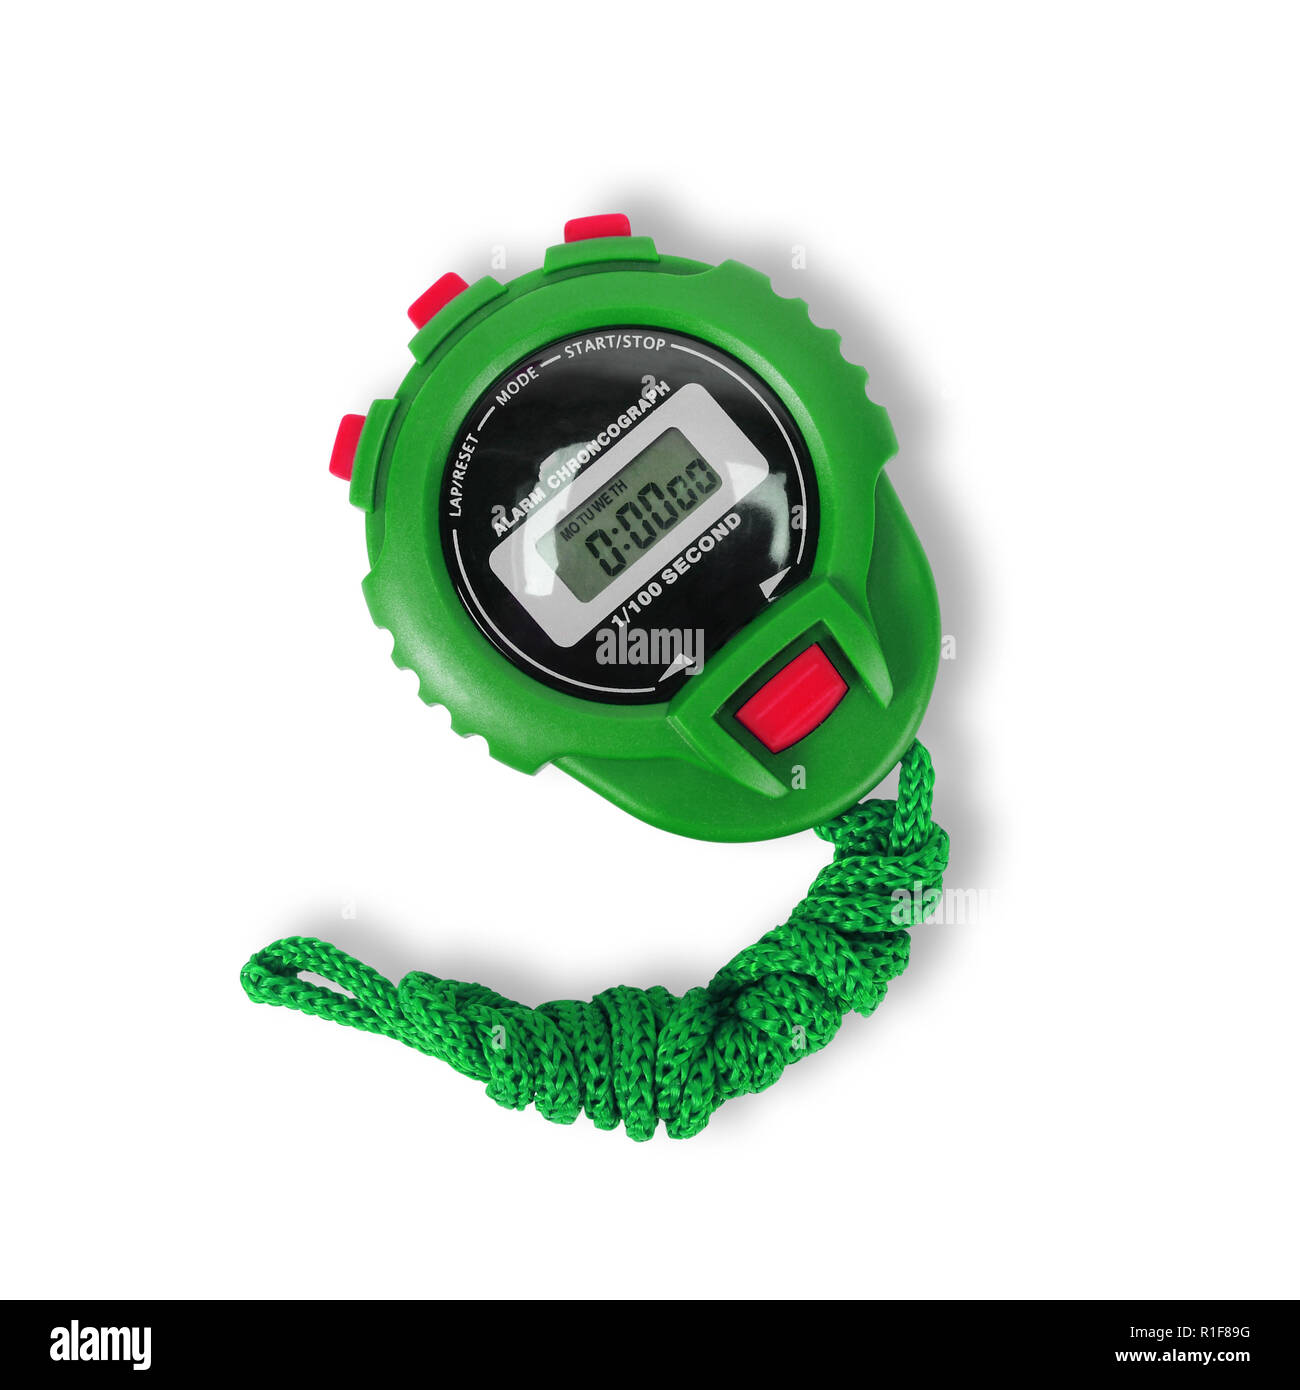 Sports equipment - Green Digital electronic Stopwatch on a white background. Isolated - Stock Image